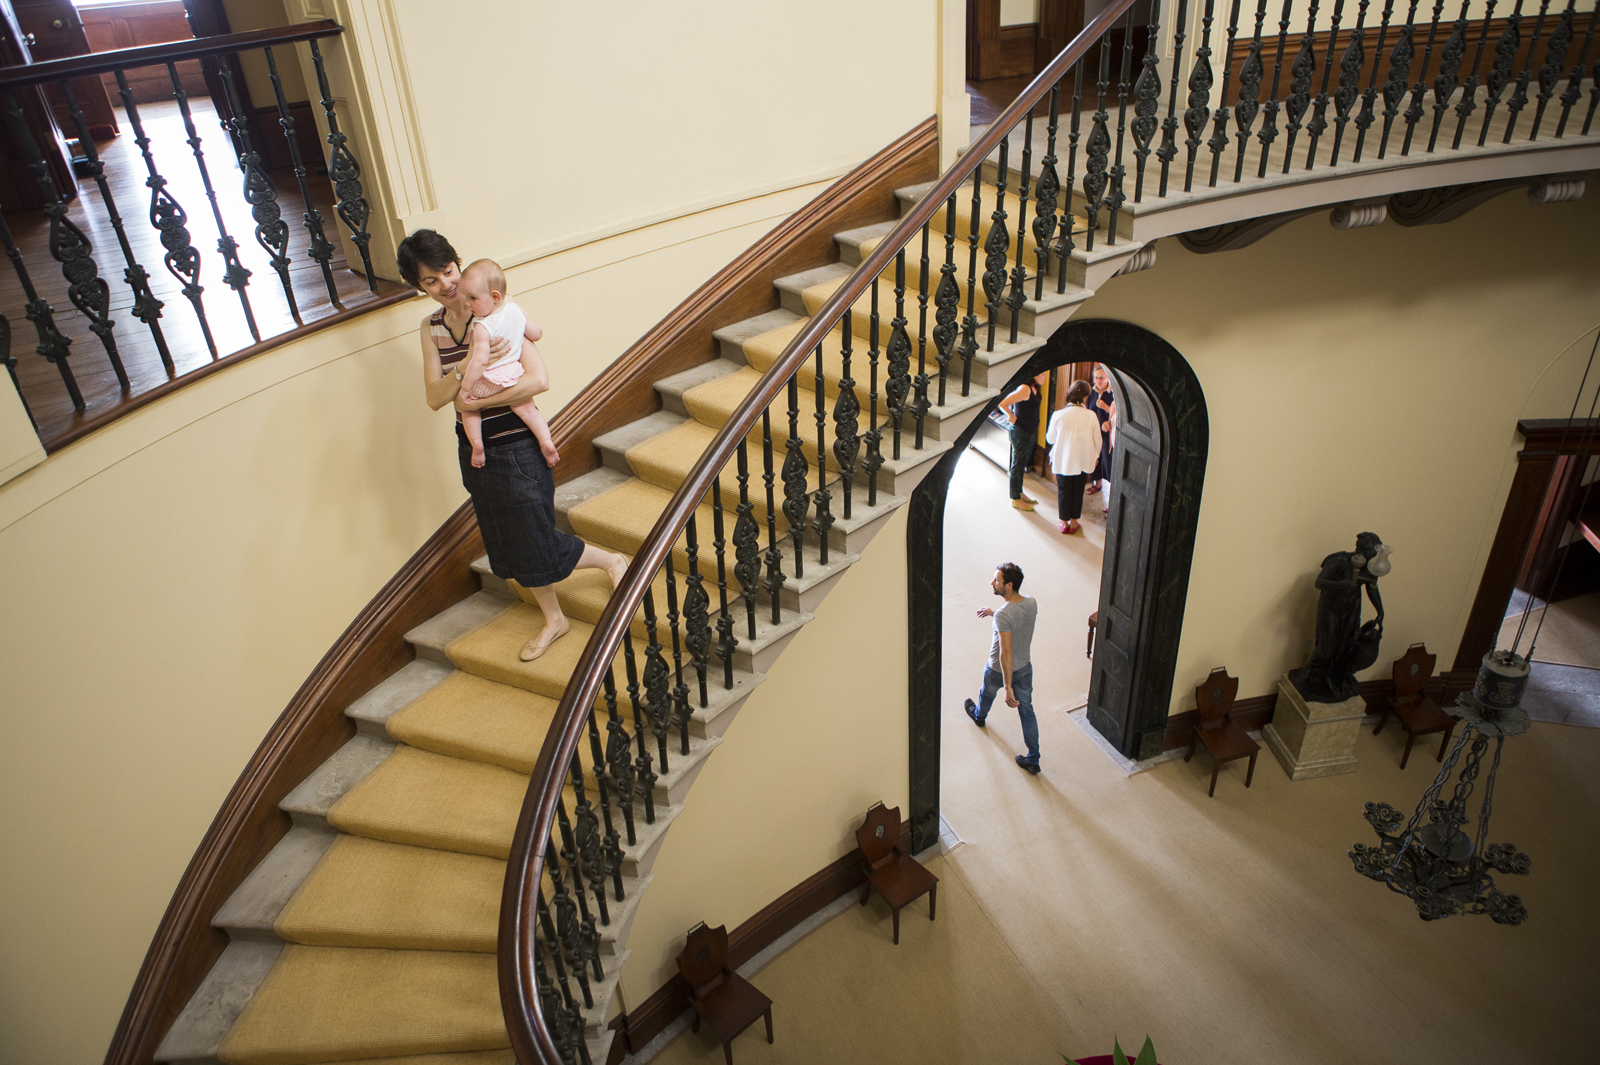 Woman and baby on the cantilevered staircase in the saloon, Elizabeth Bay House, with other visitors visible on the ground floor.